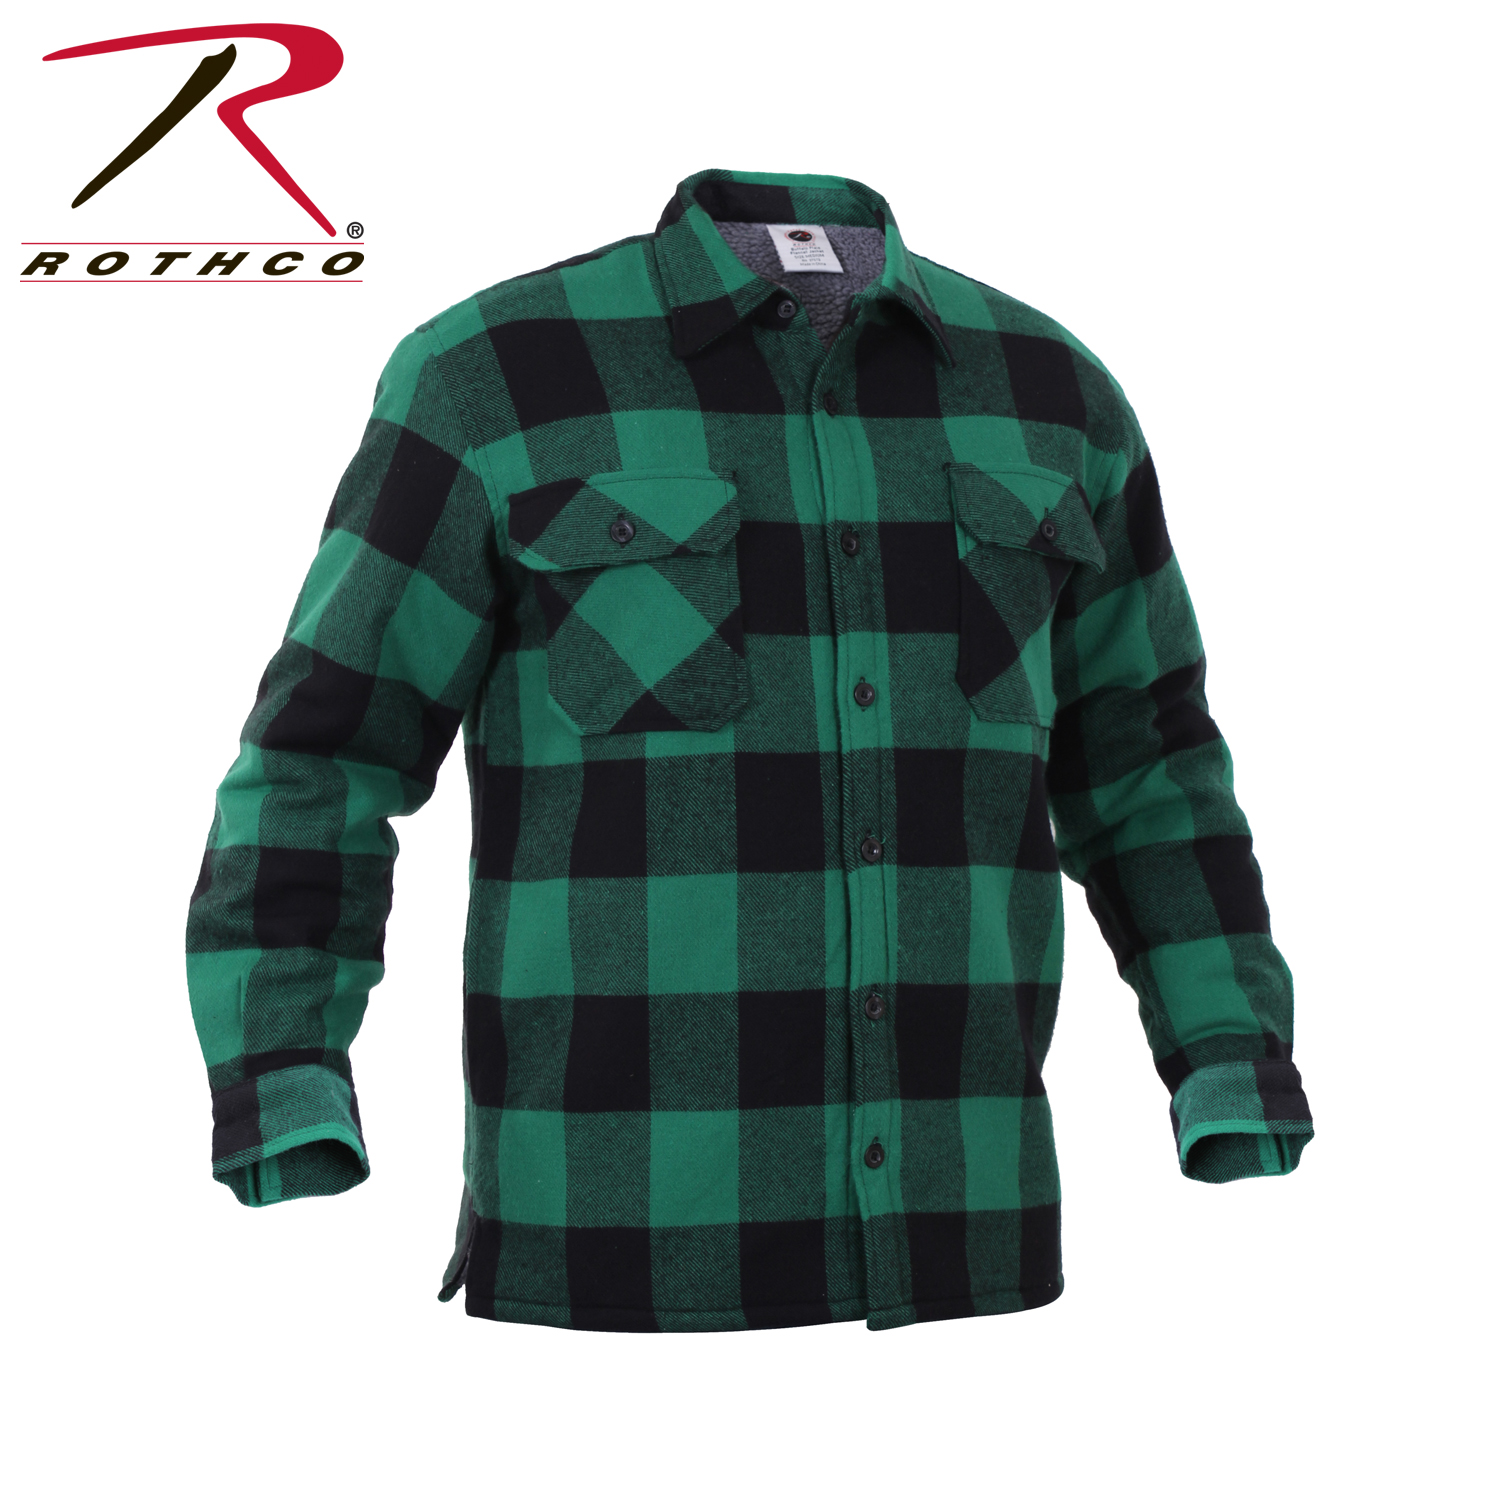 Details about Rothco 3735 Extra Heavyweight Buffalo Plaid Sherpa-lined Flannel  Shirts - Green efe3f7b2758